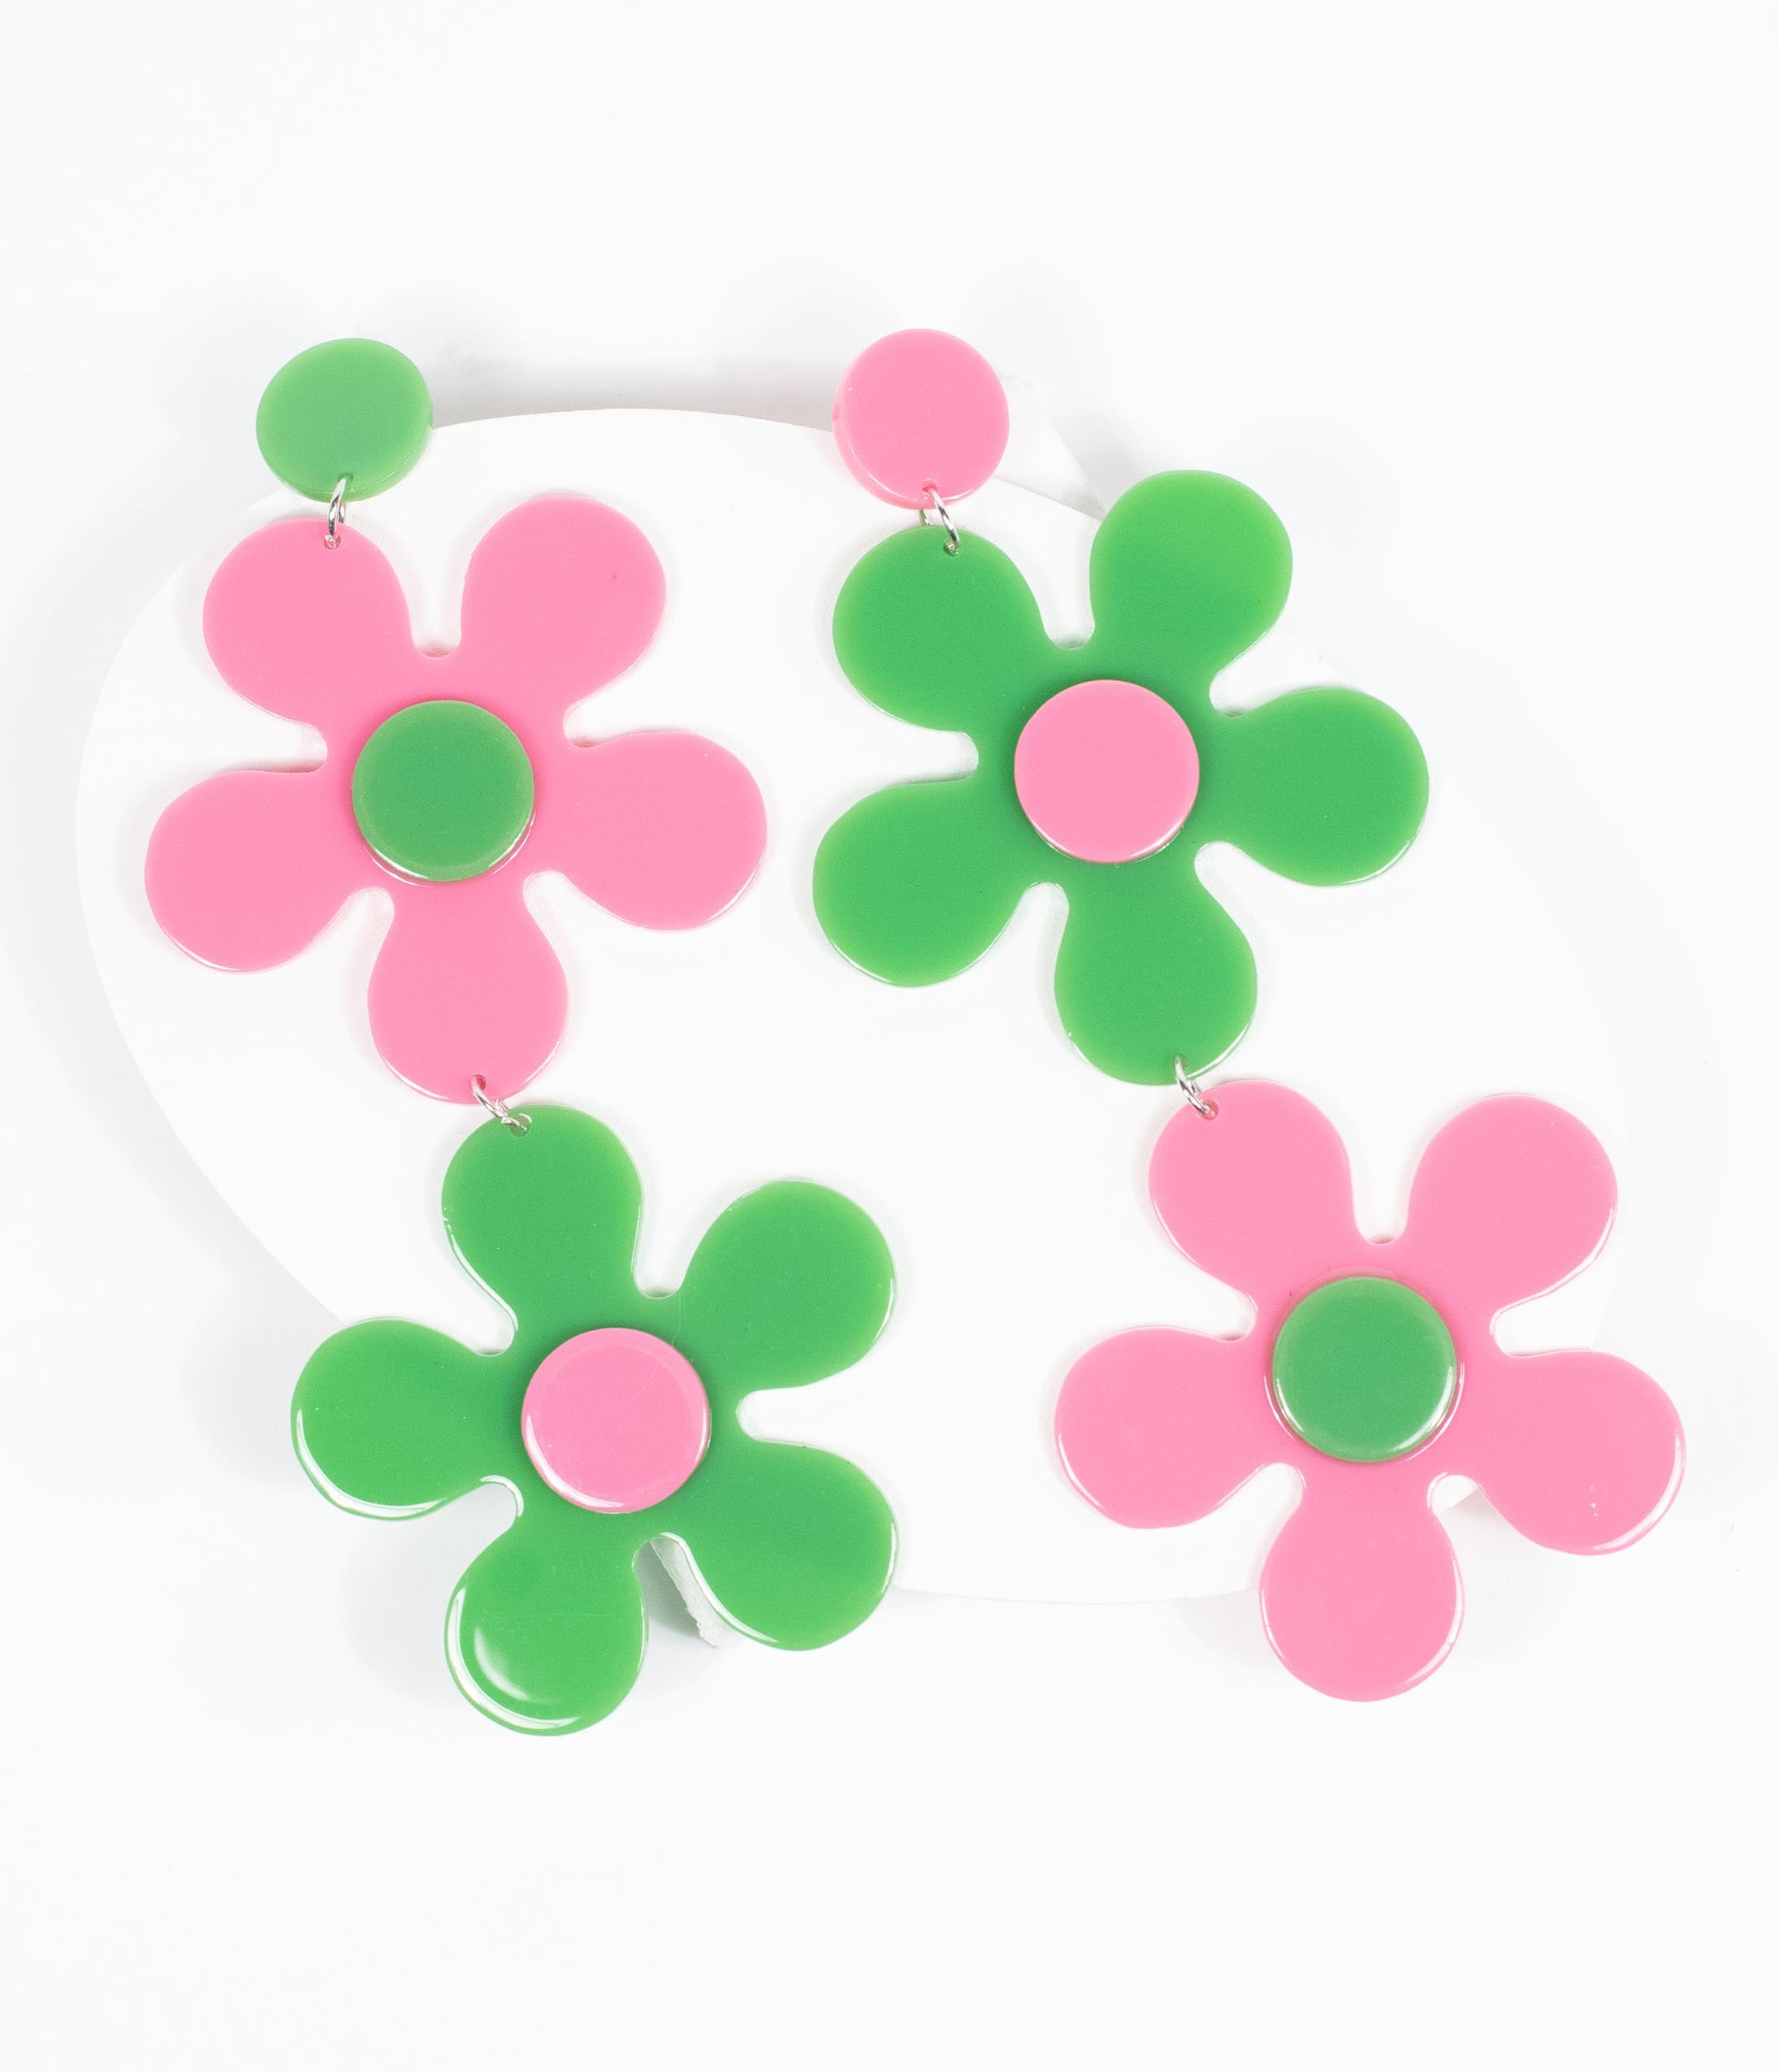 Vintage Style Jewelry, Retro Jewelry Retro Style Pink  Green Flower Power Drop Earrings $28.00 AT vintagedancer.com